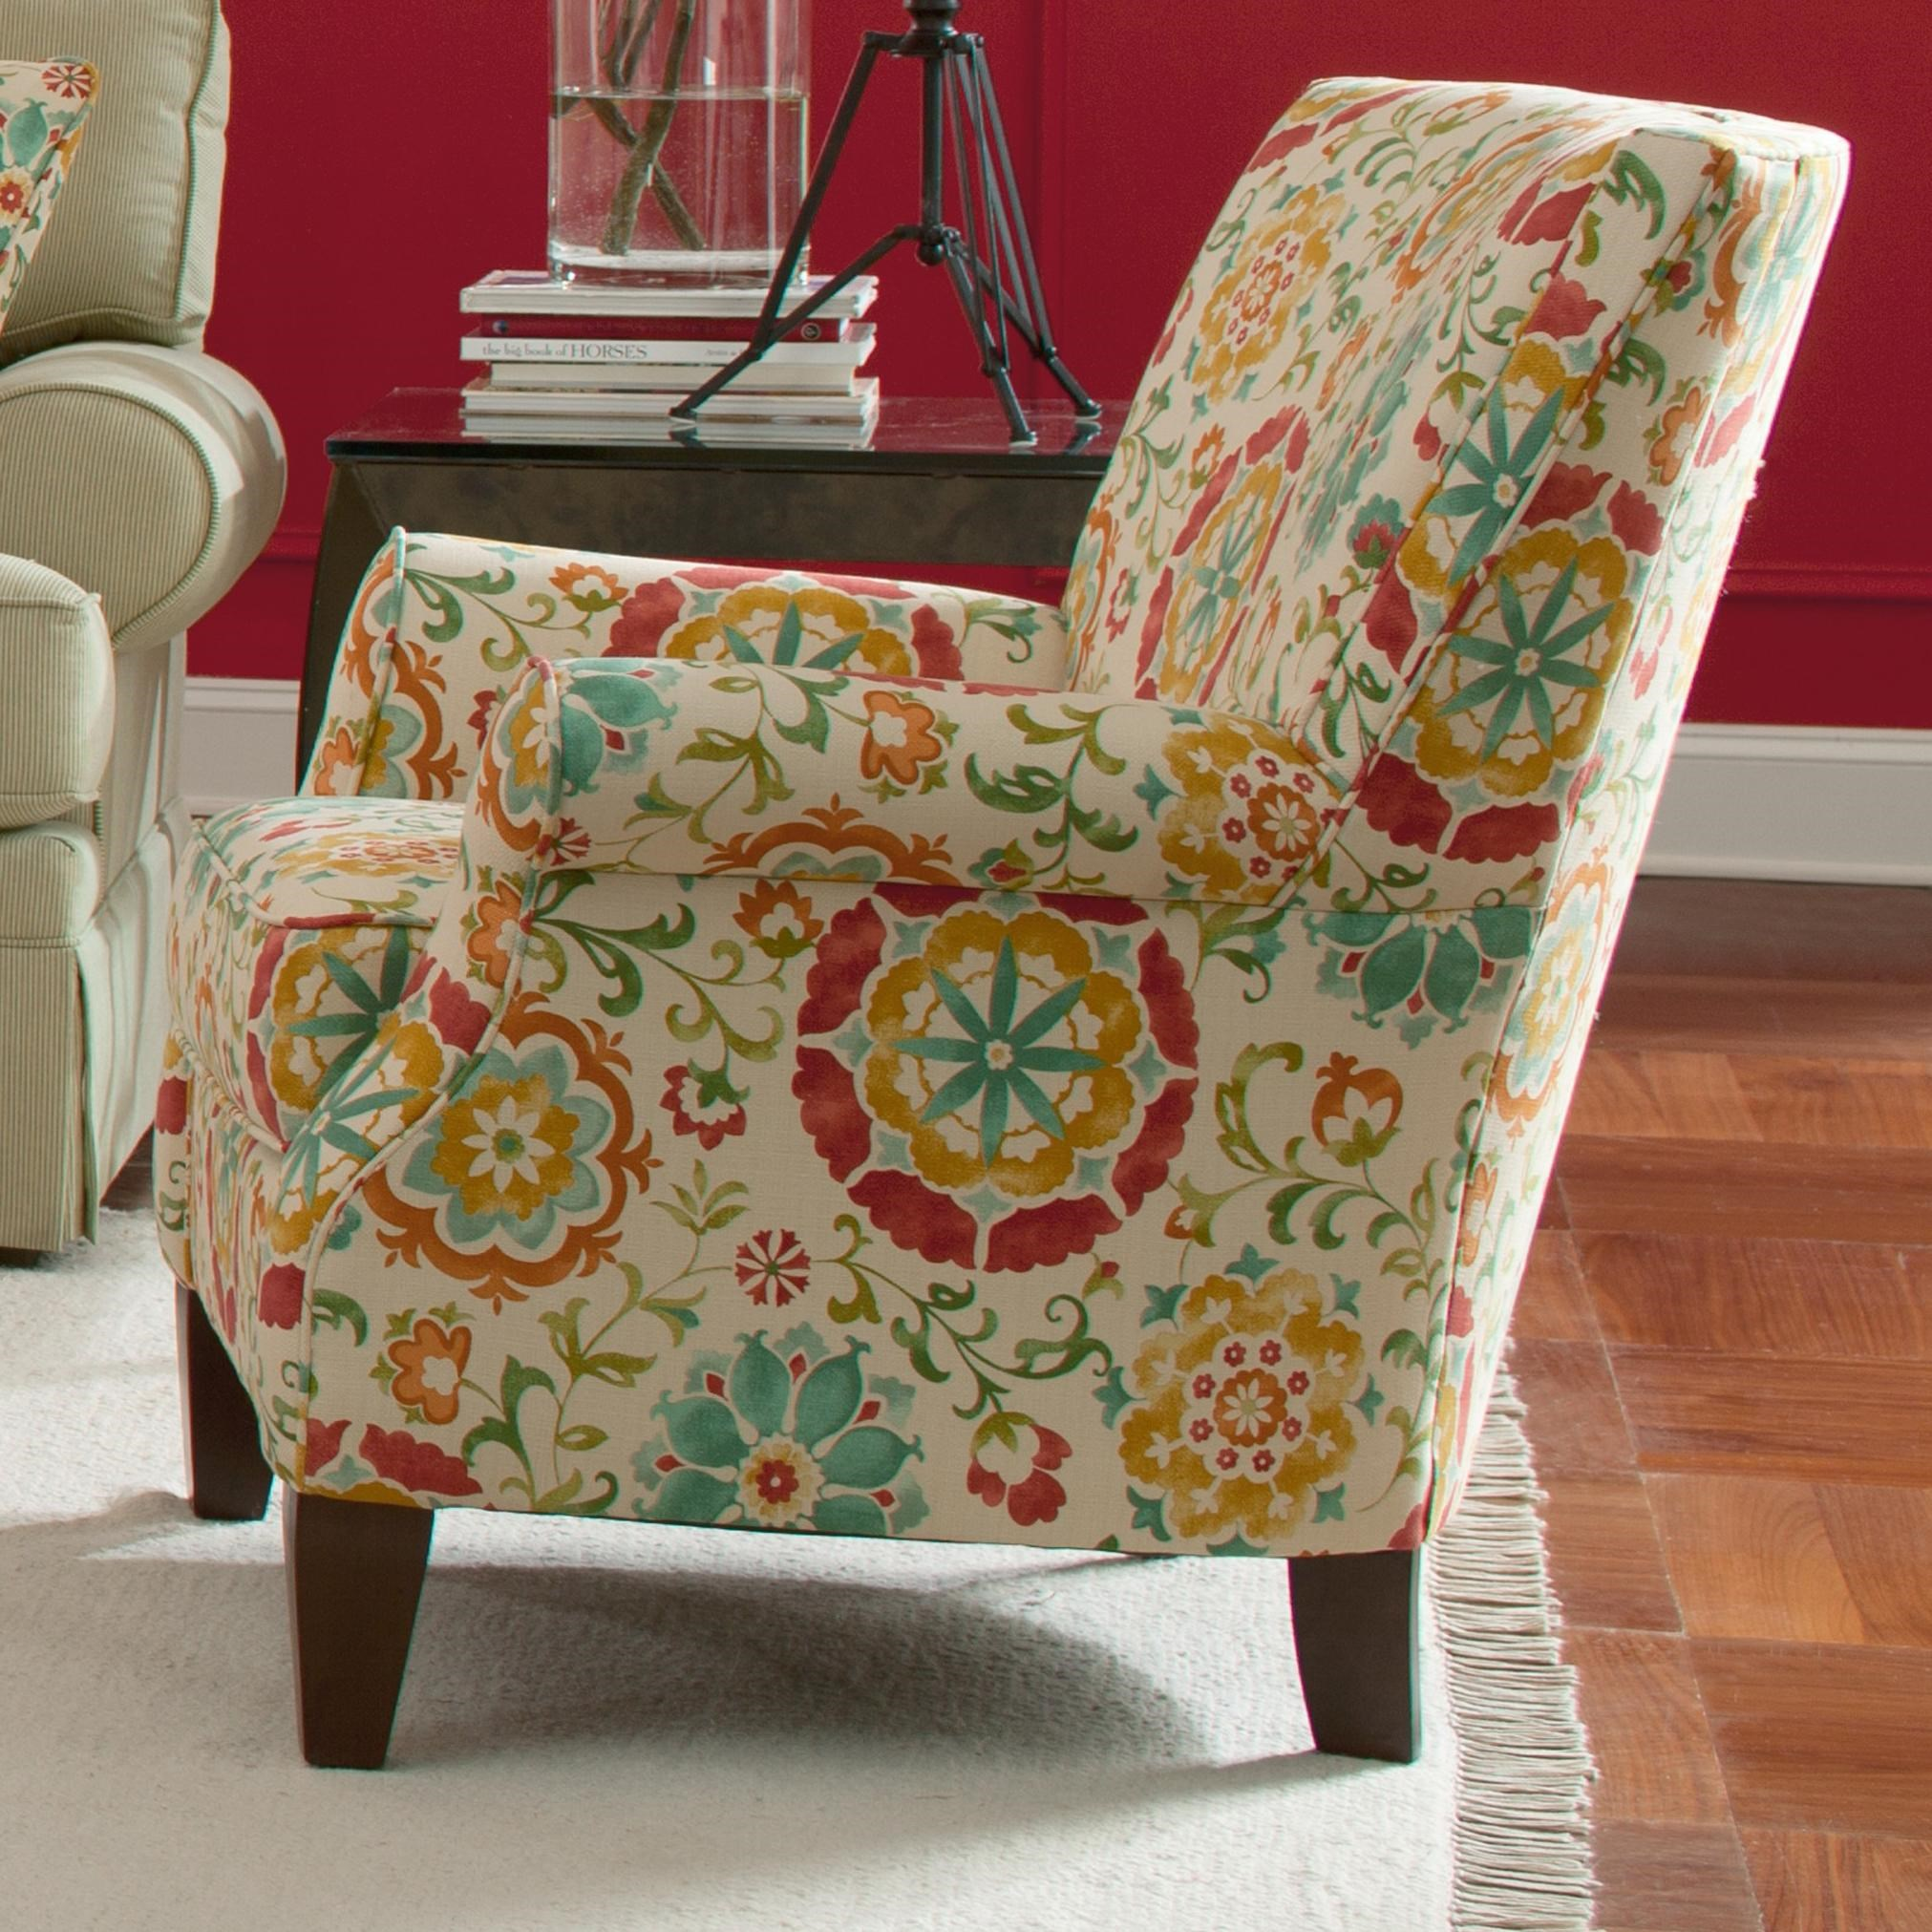 Interesting Red Accent Chair With Arms Chairsbeautiful Ottoman